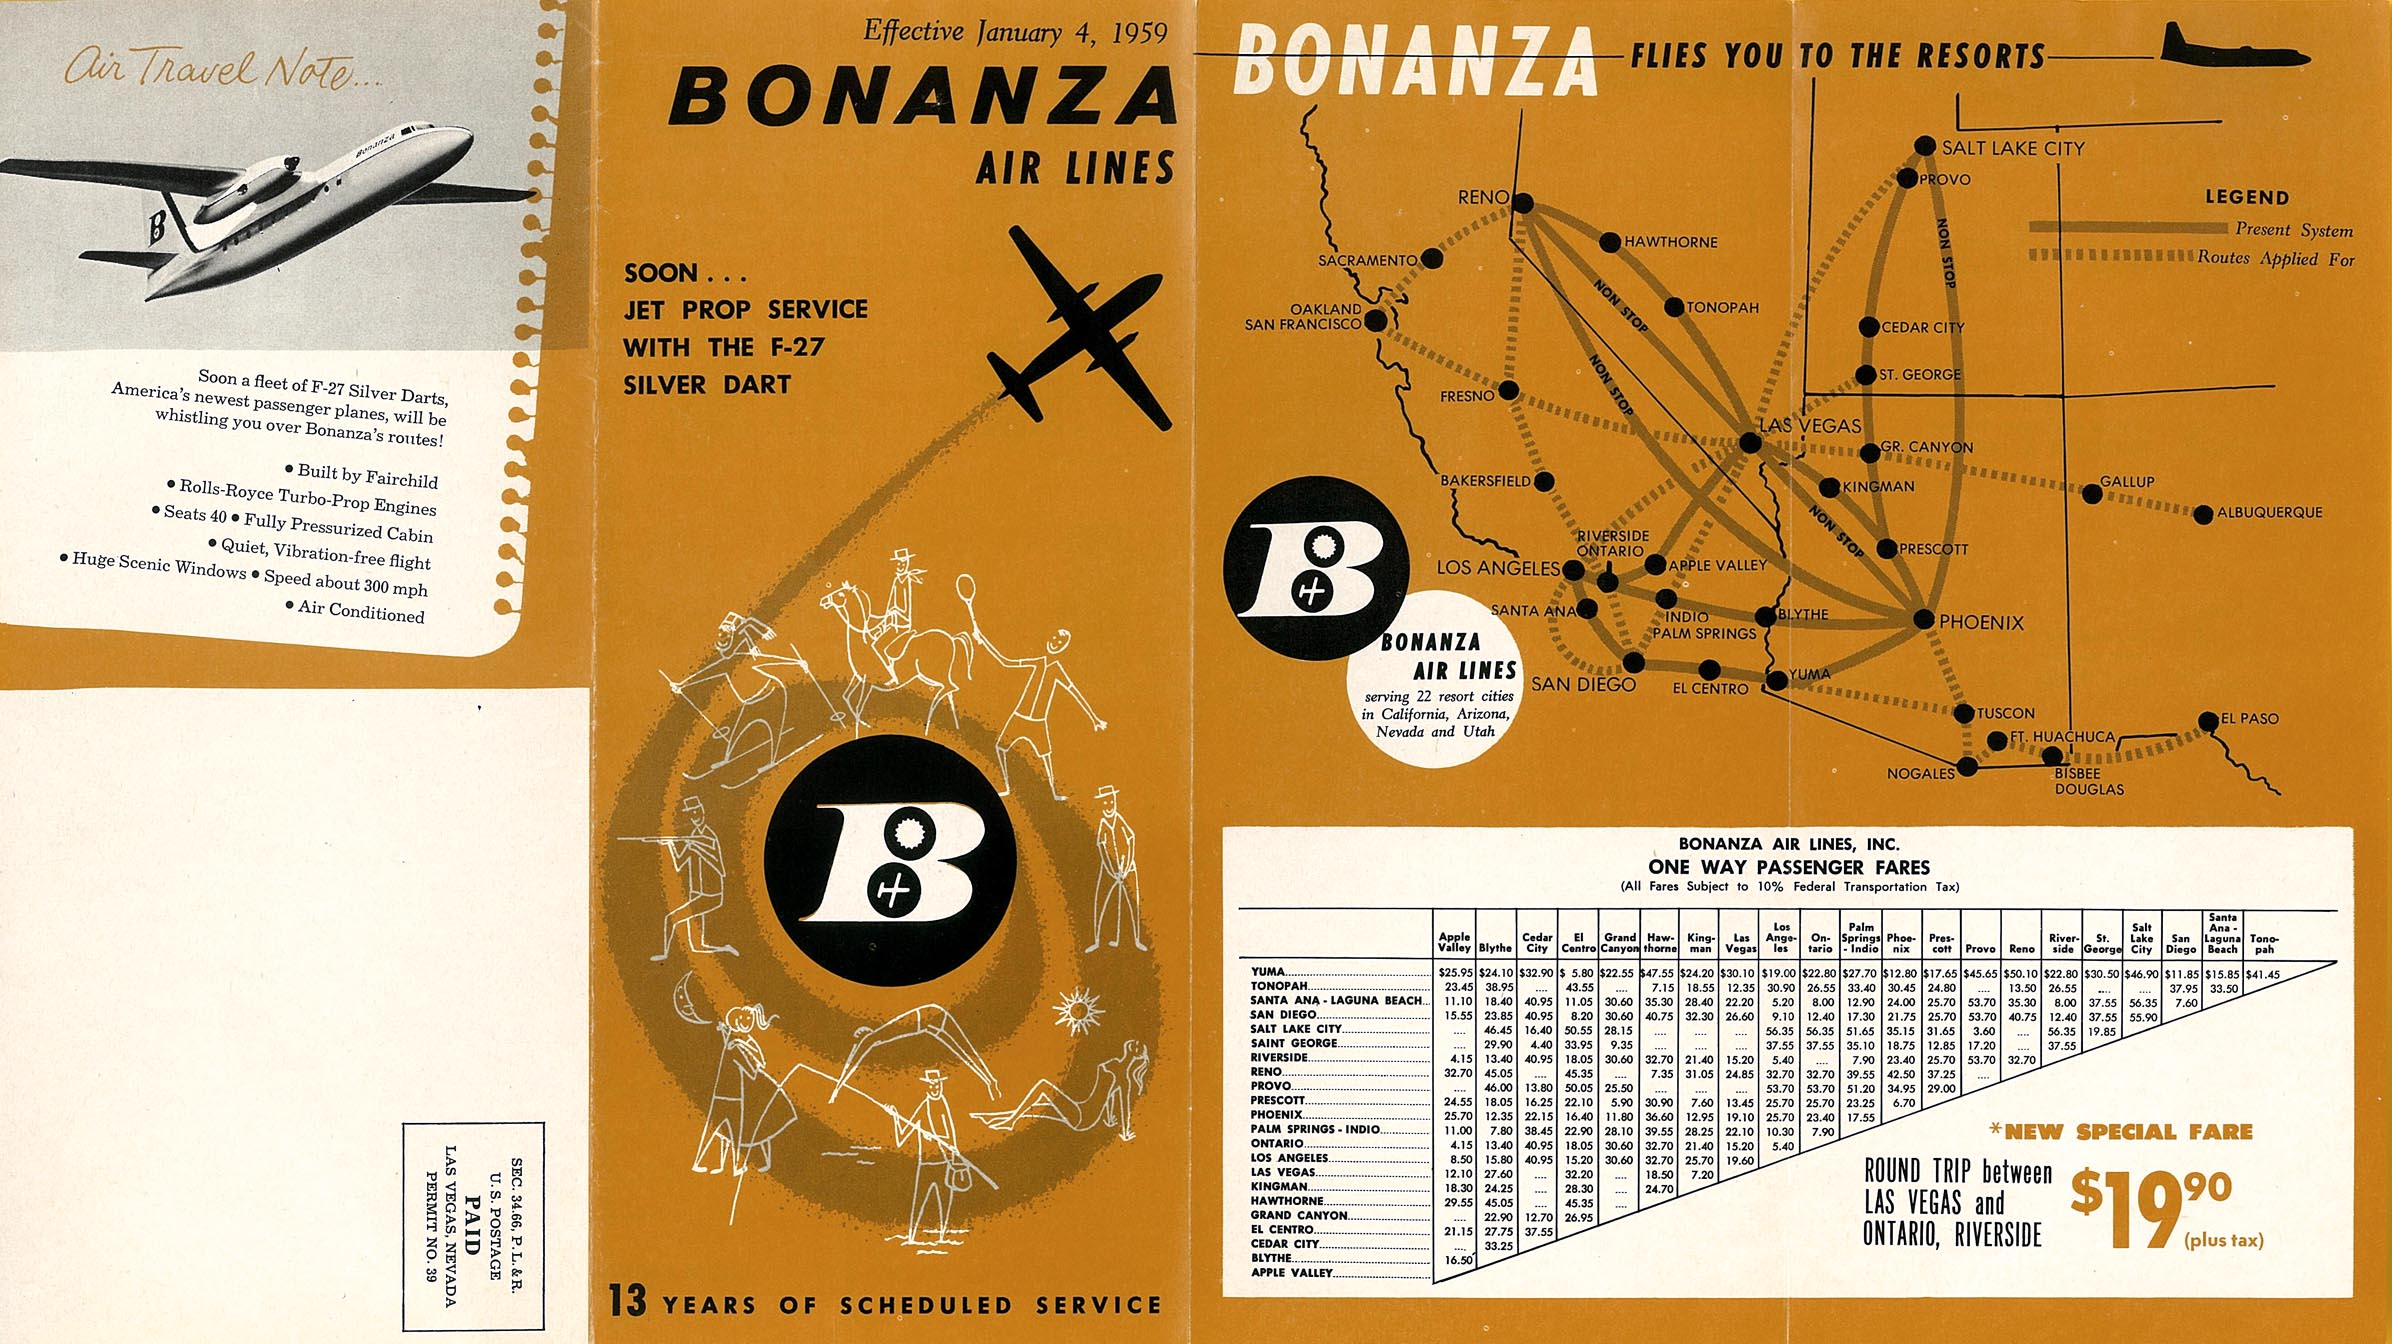 Reading | Bonanza Air Lines on central airlines route map, air niugini route map, iberia route map, twa route map, national airlines route map, eastern air lines route map, horizon air route map, republic airlines route map, delta air lines route map, aeroperu route map, american airlines route map, skywest airlines route map, air south route map, luxair route map, great northern route map, compass airlines route map, british airways route map, alaska airlines route map, germanwings route map, aeroflot route map,